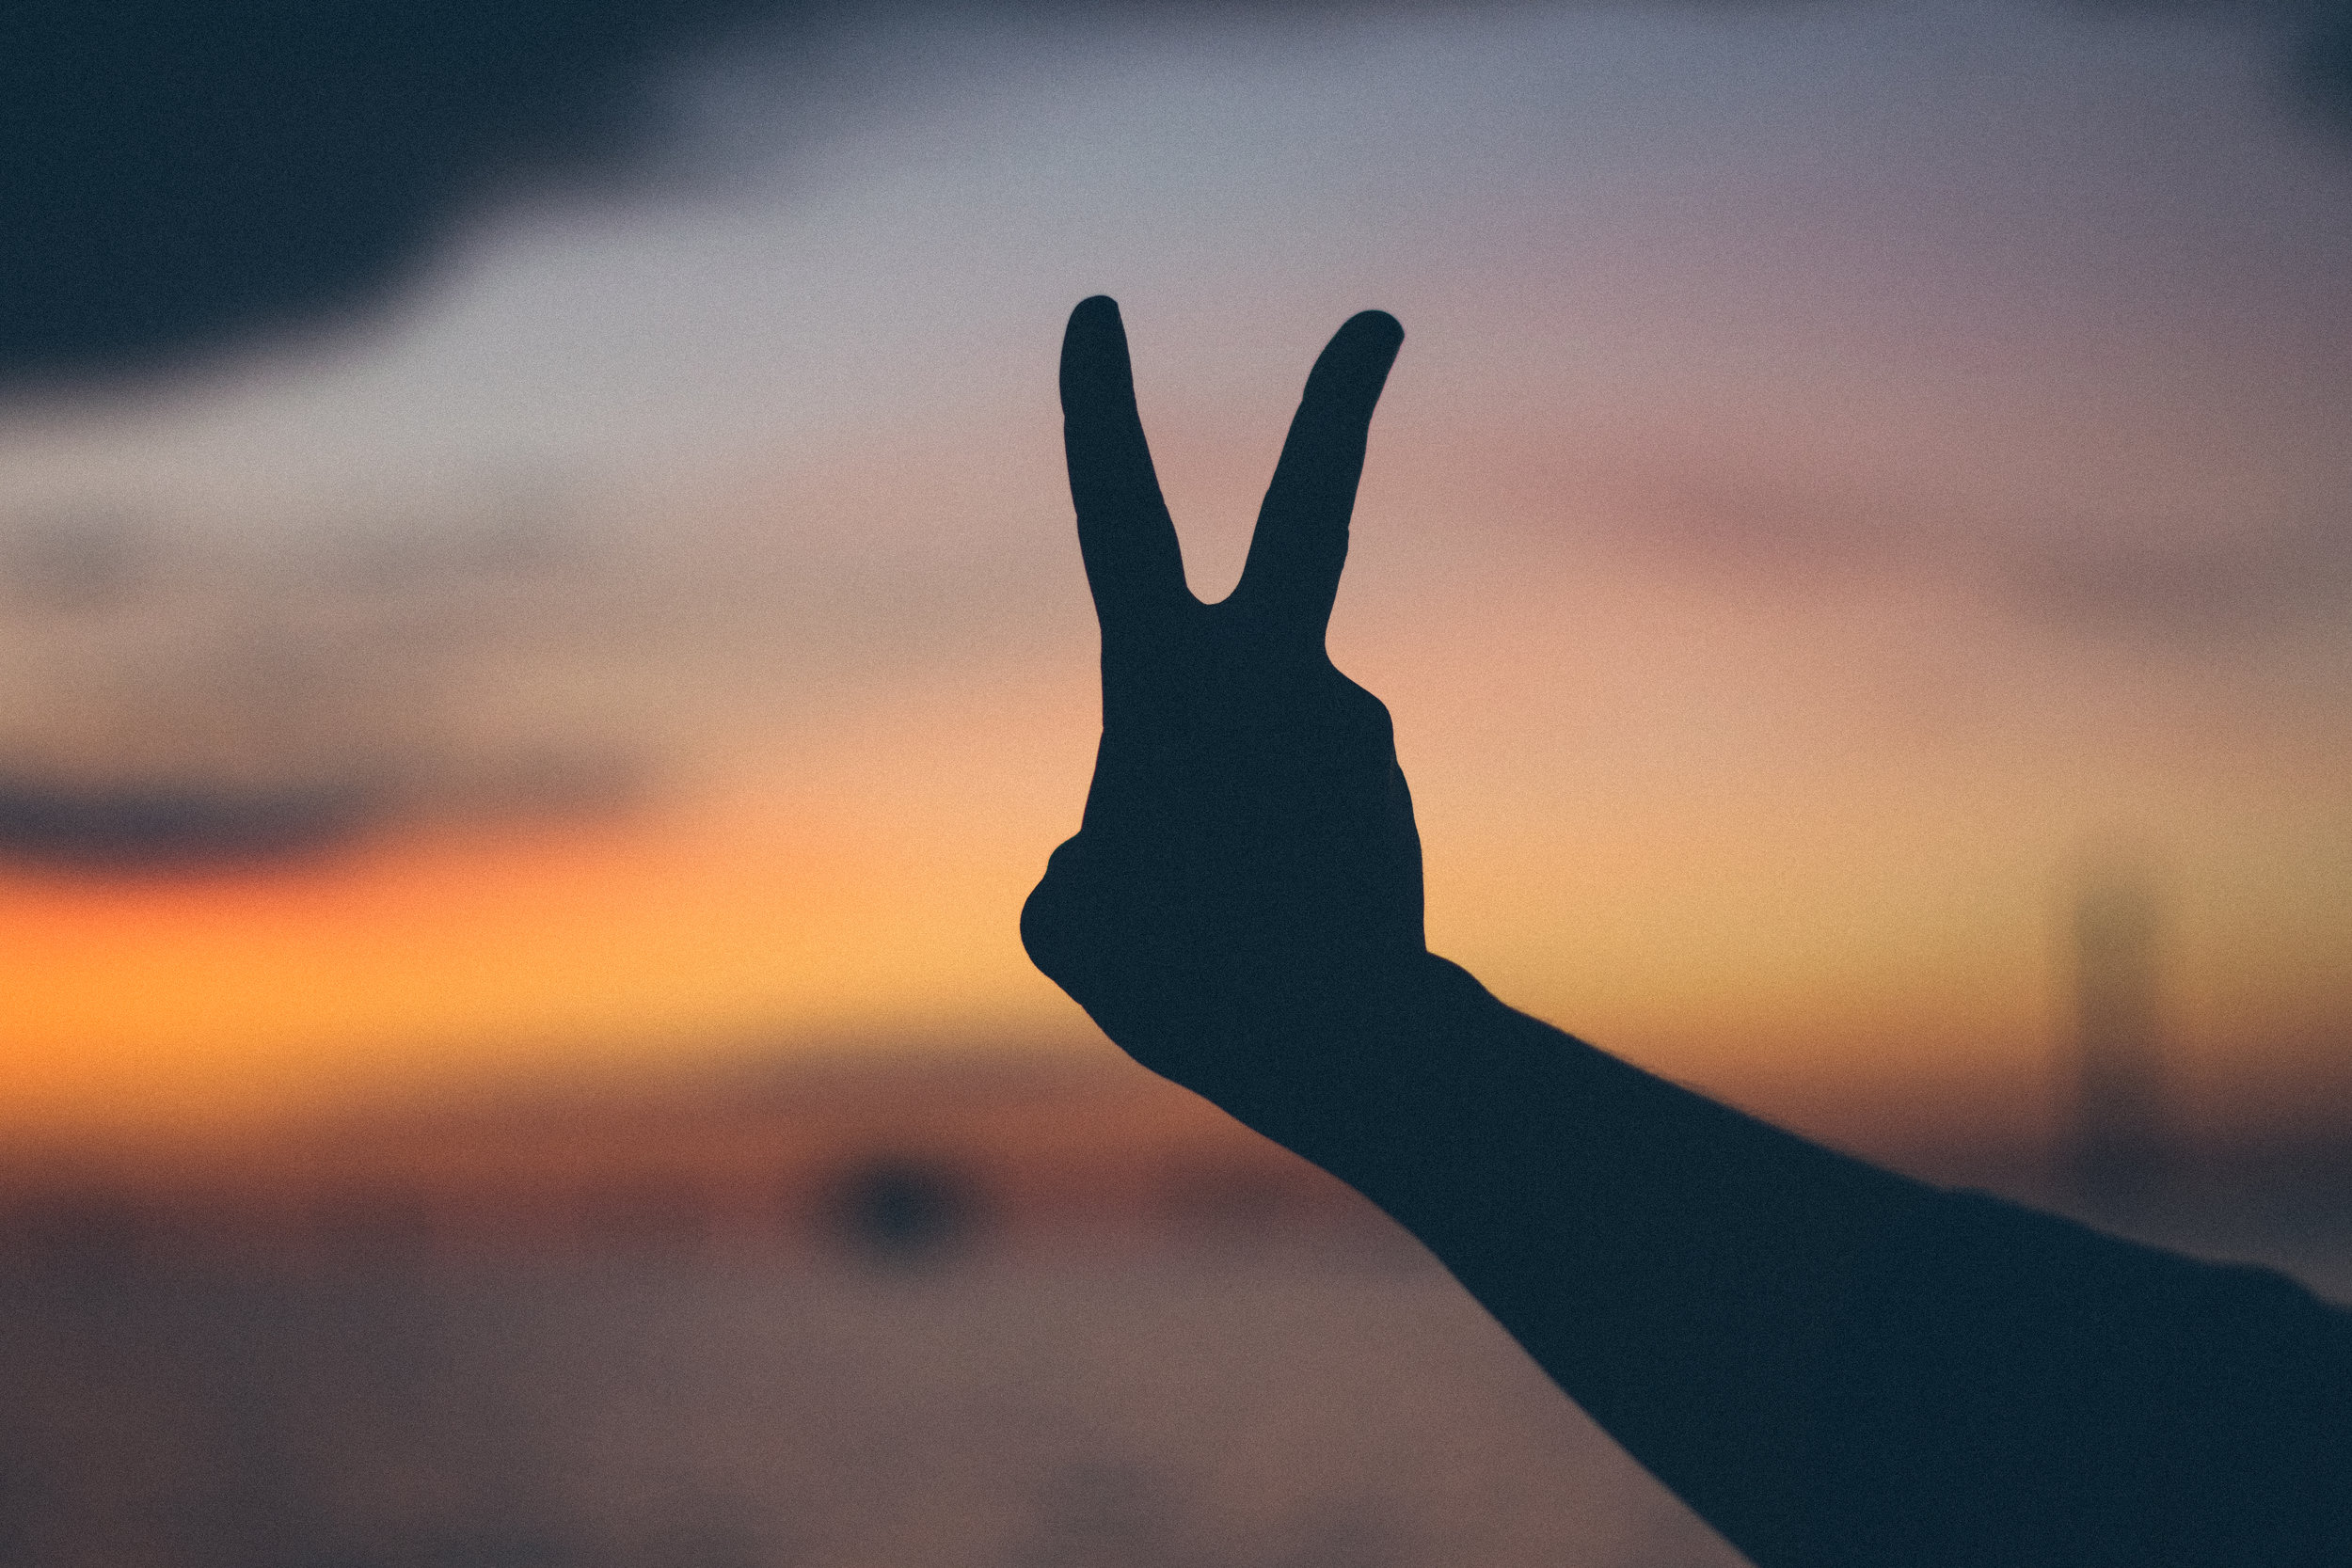 Instant Peace. Feel at peace with your physical and mental health as you invest strong habits towards yourself. -